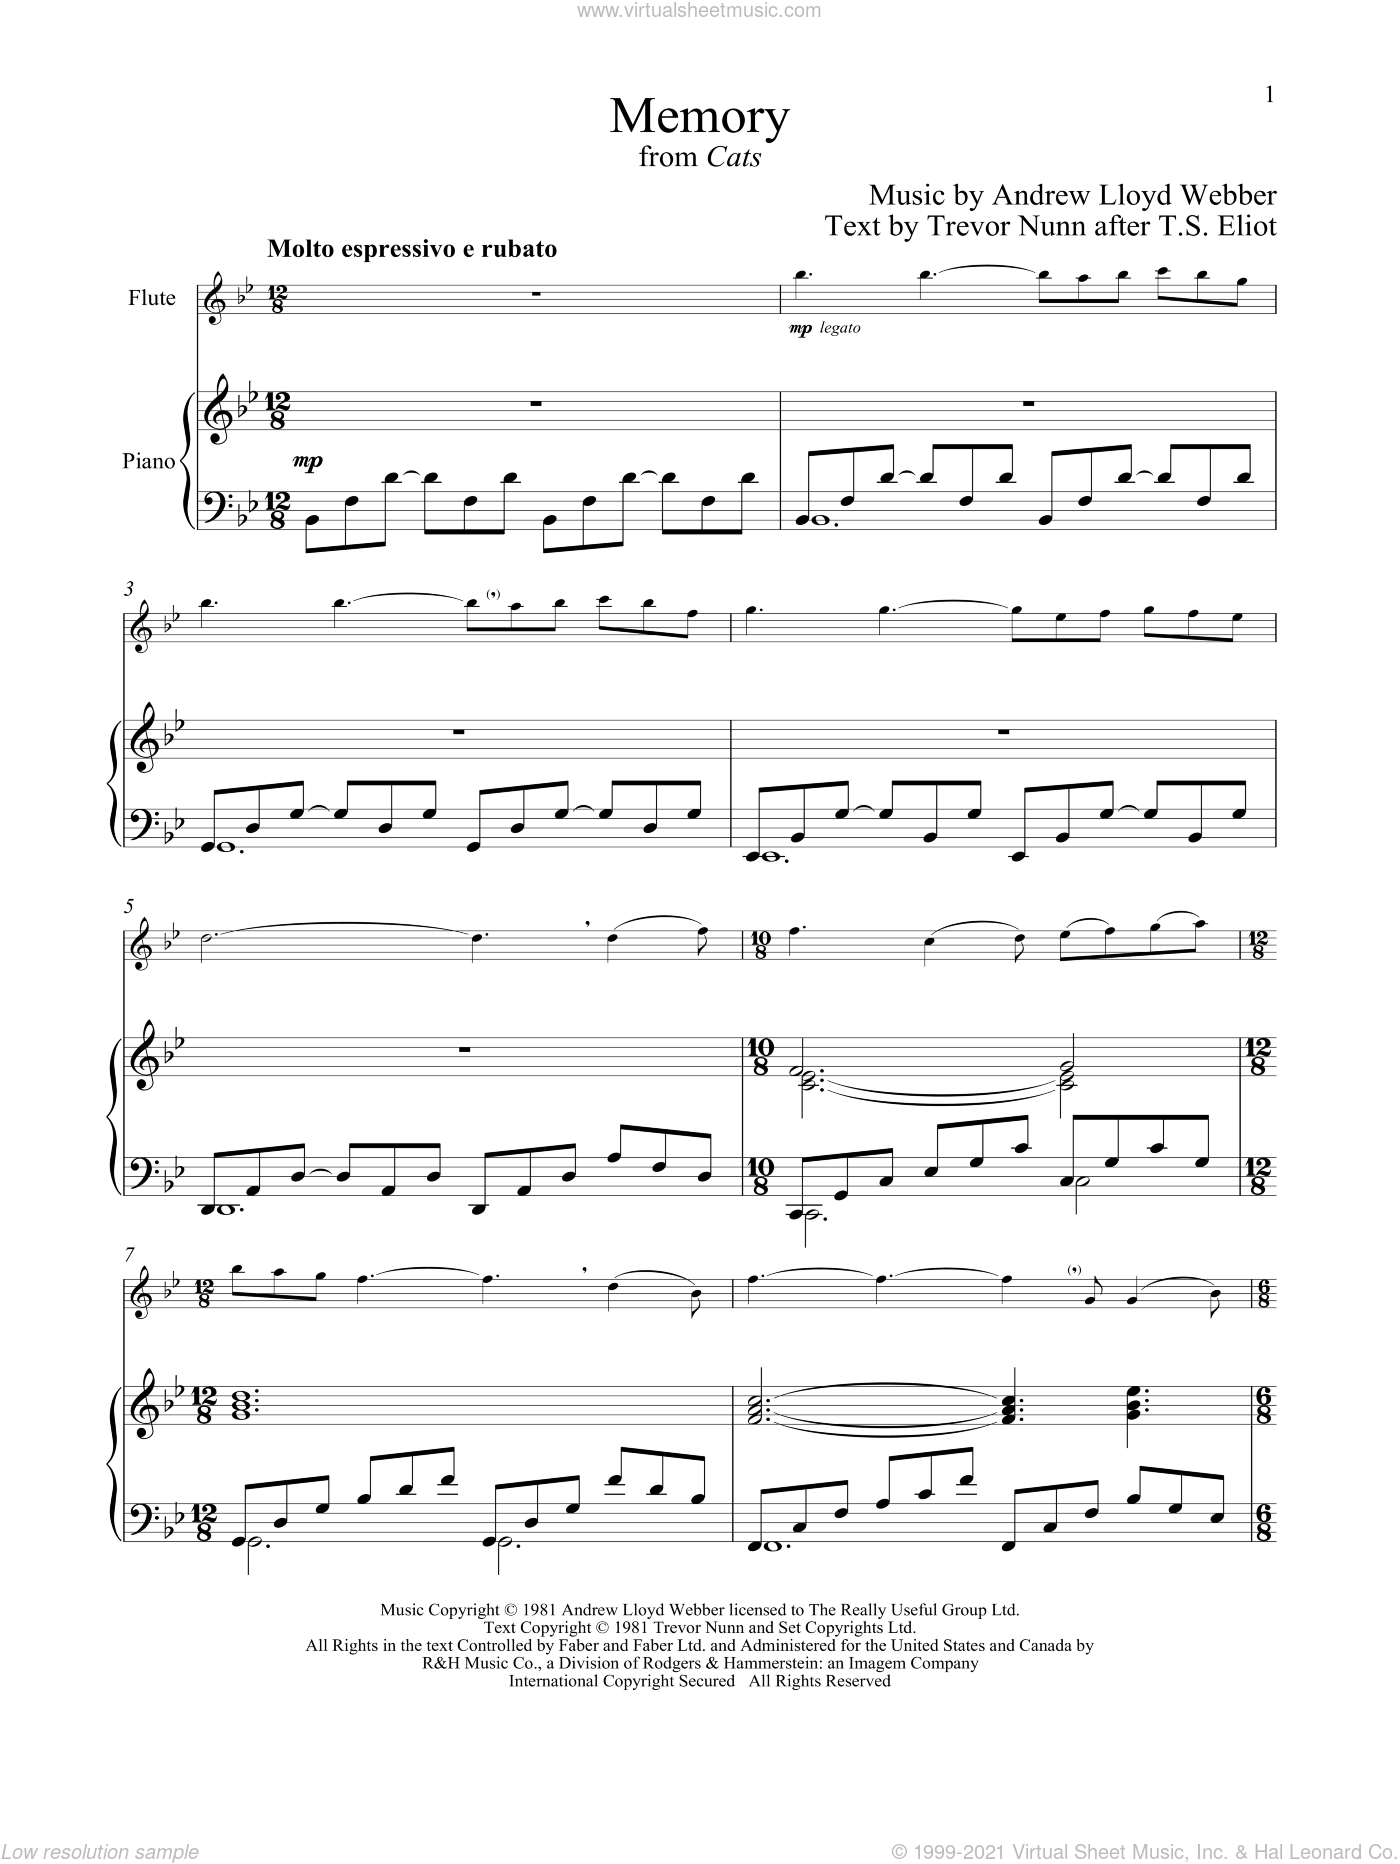 Memory (from Cats) sheet music for flute and piano by Andrew Lloyd Webber, intermediate skill level